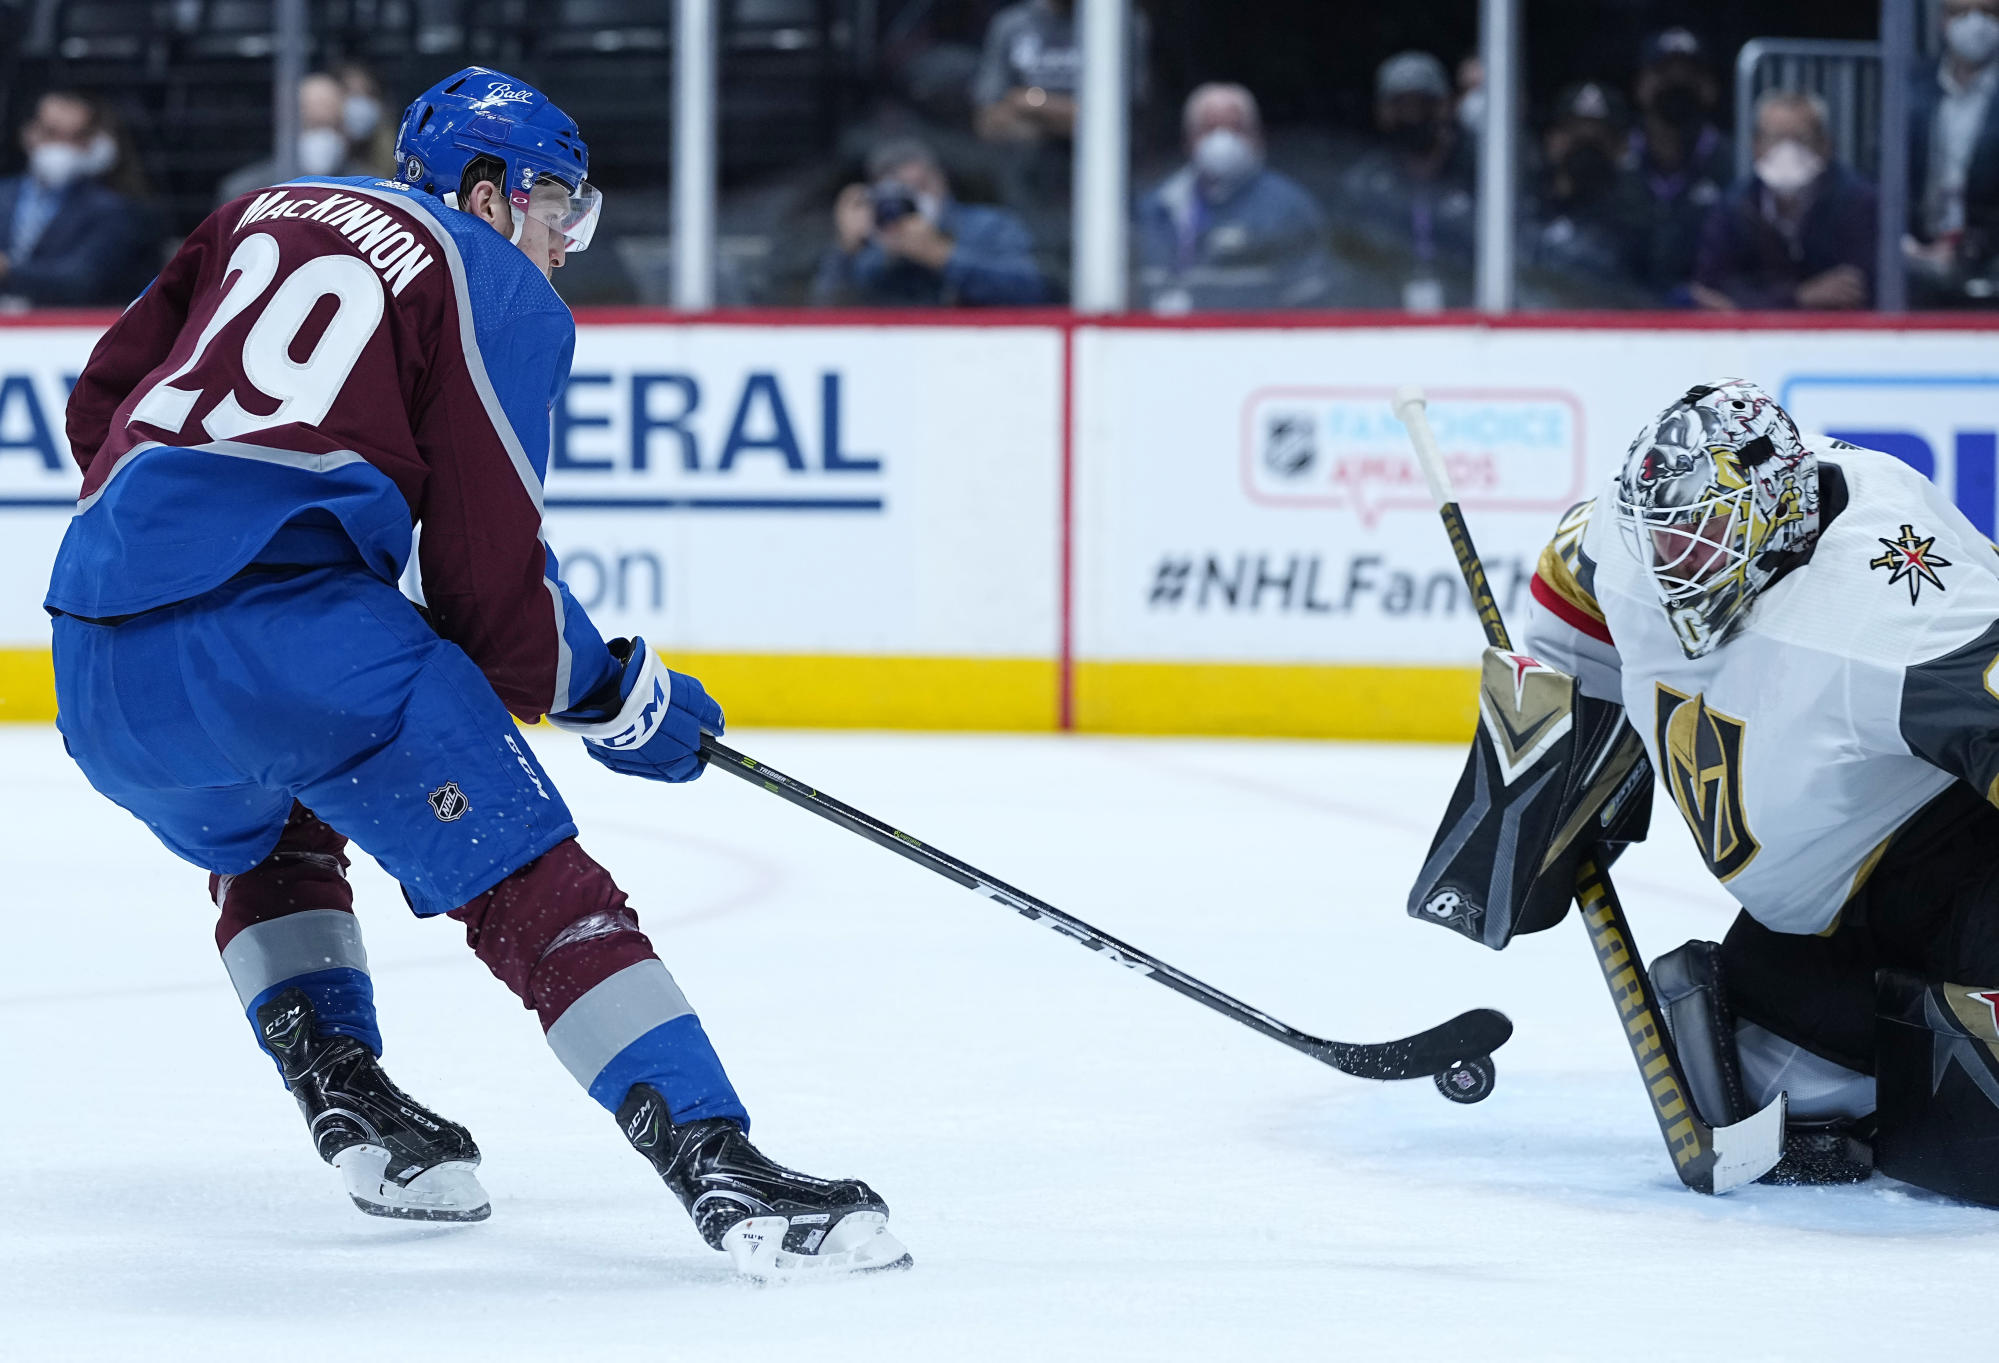 Avalanche blaze past Knights 7-1 in penalty-filled Game 1